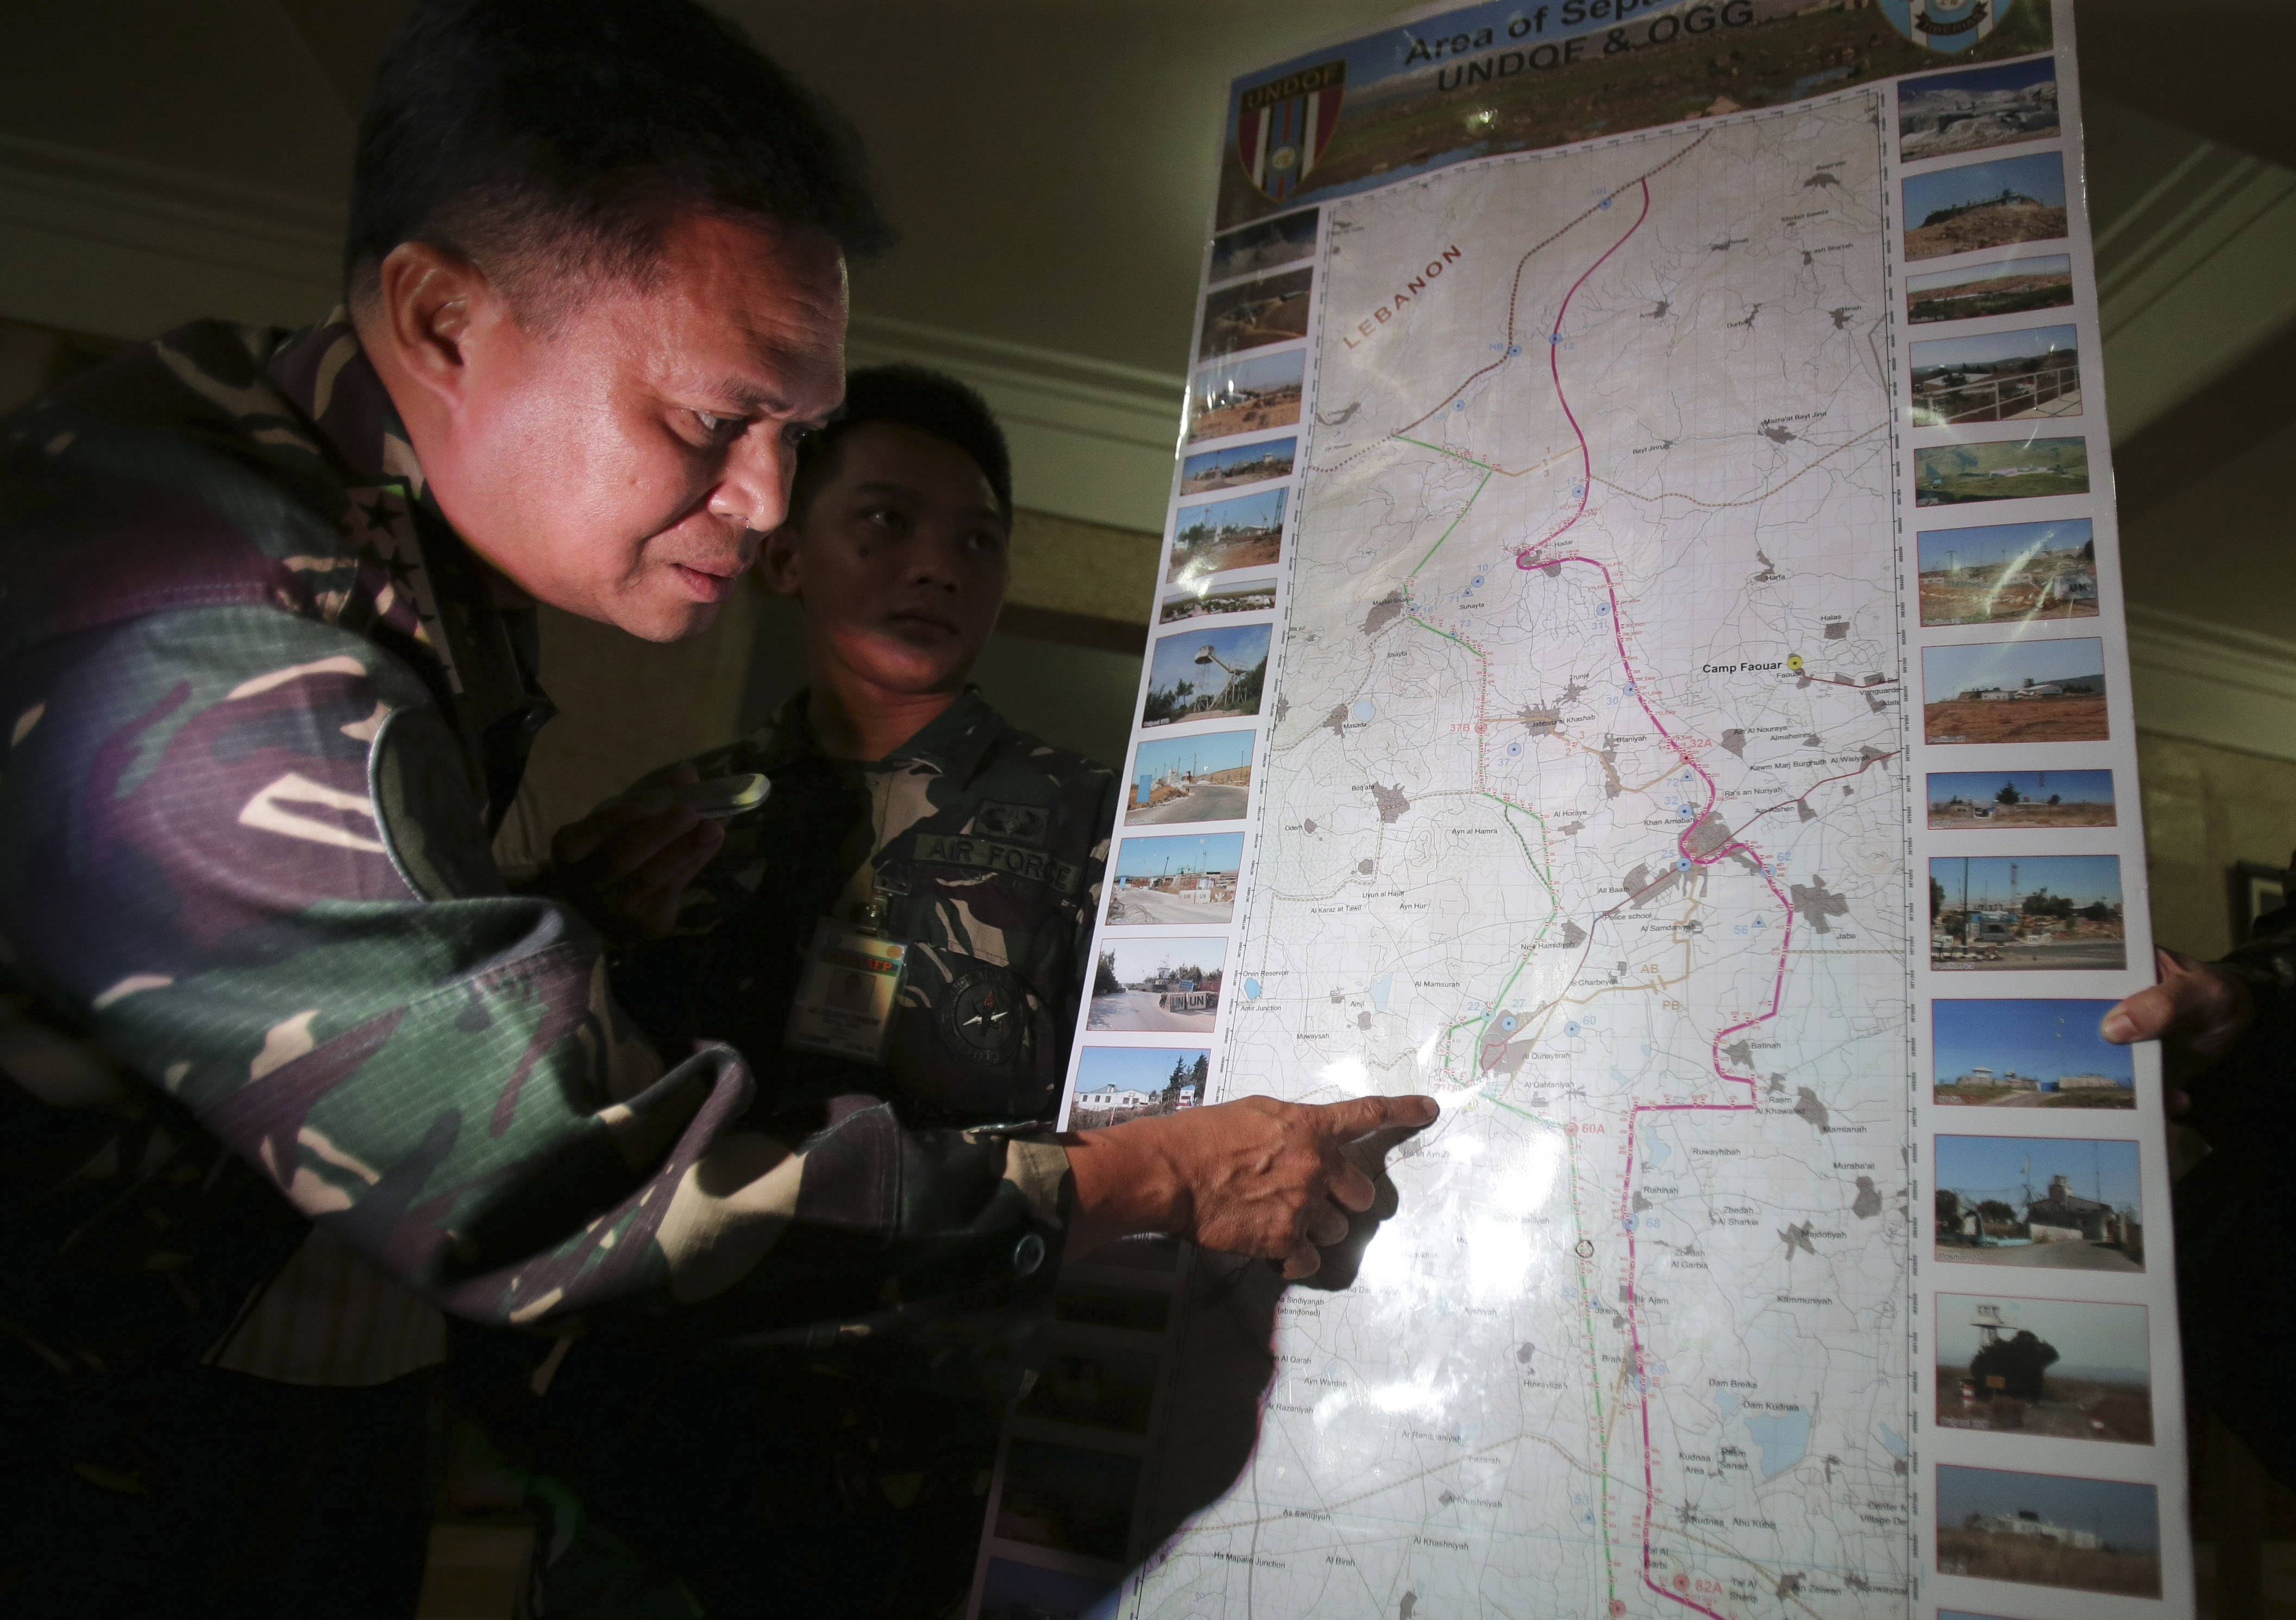 Philippine military chief Gen. Gregorio Pio Catapang shows reporters where Filipino peacekeepers in Golan Heights have been repositioned during a press conference at Camp Aguinaldo military headquarters in suburban Quezon city, Philippines on Sunday Aug. 31, 2014. Catapang said more than 70 Filipino peacekeepers have escaped from two areas in the Golan Heights that came under attack by Syrian rebels.